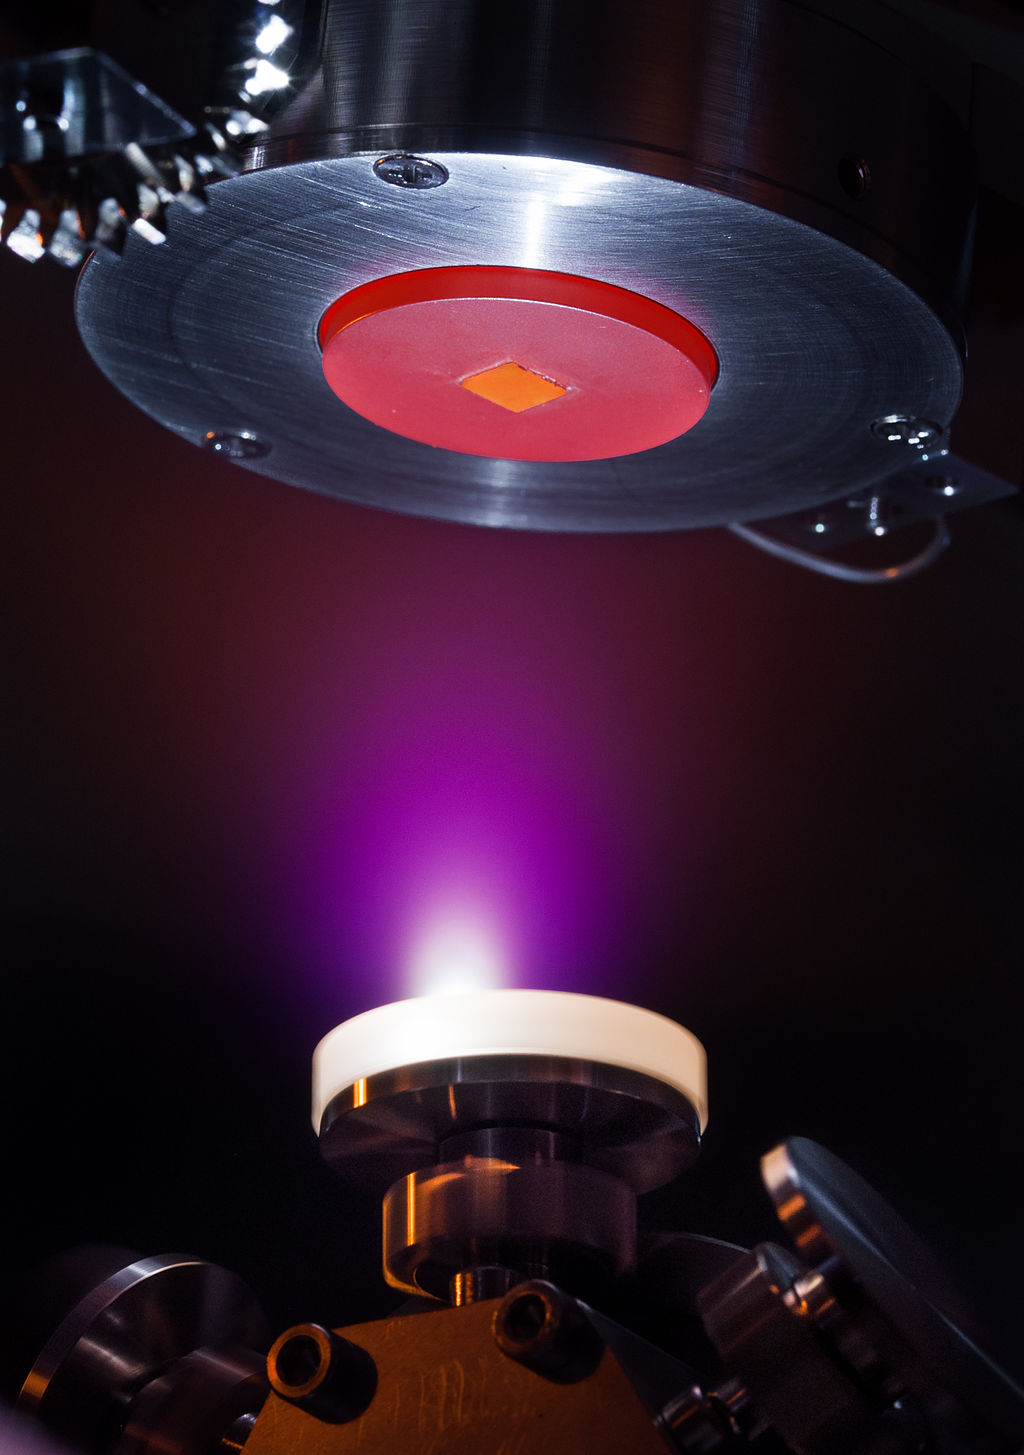 Pulsed laser deposition in action. Photo via Intellegens.